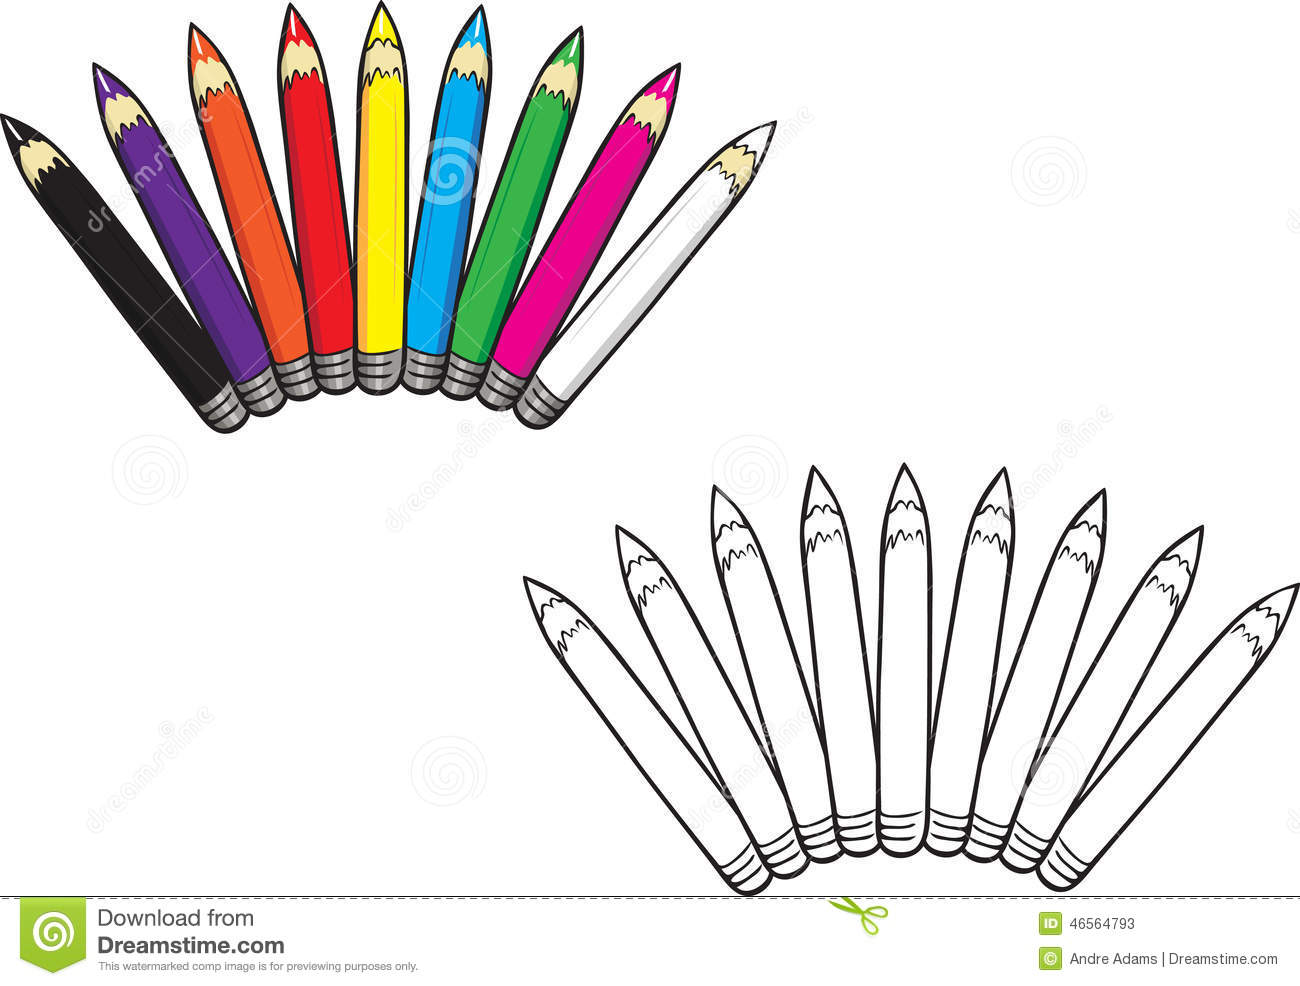 Livre De Coloriage Coloré De Collection De Crayons Illustration